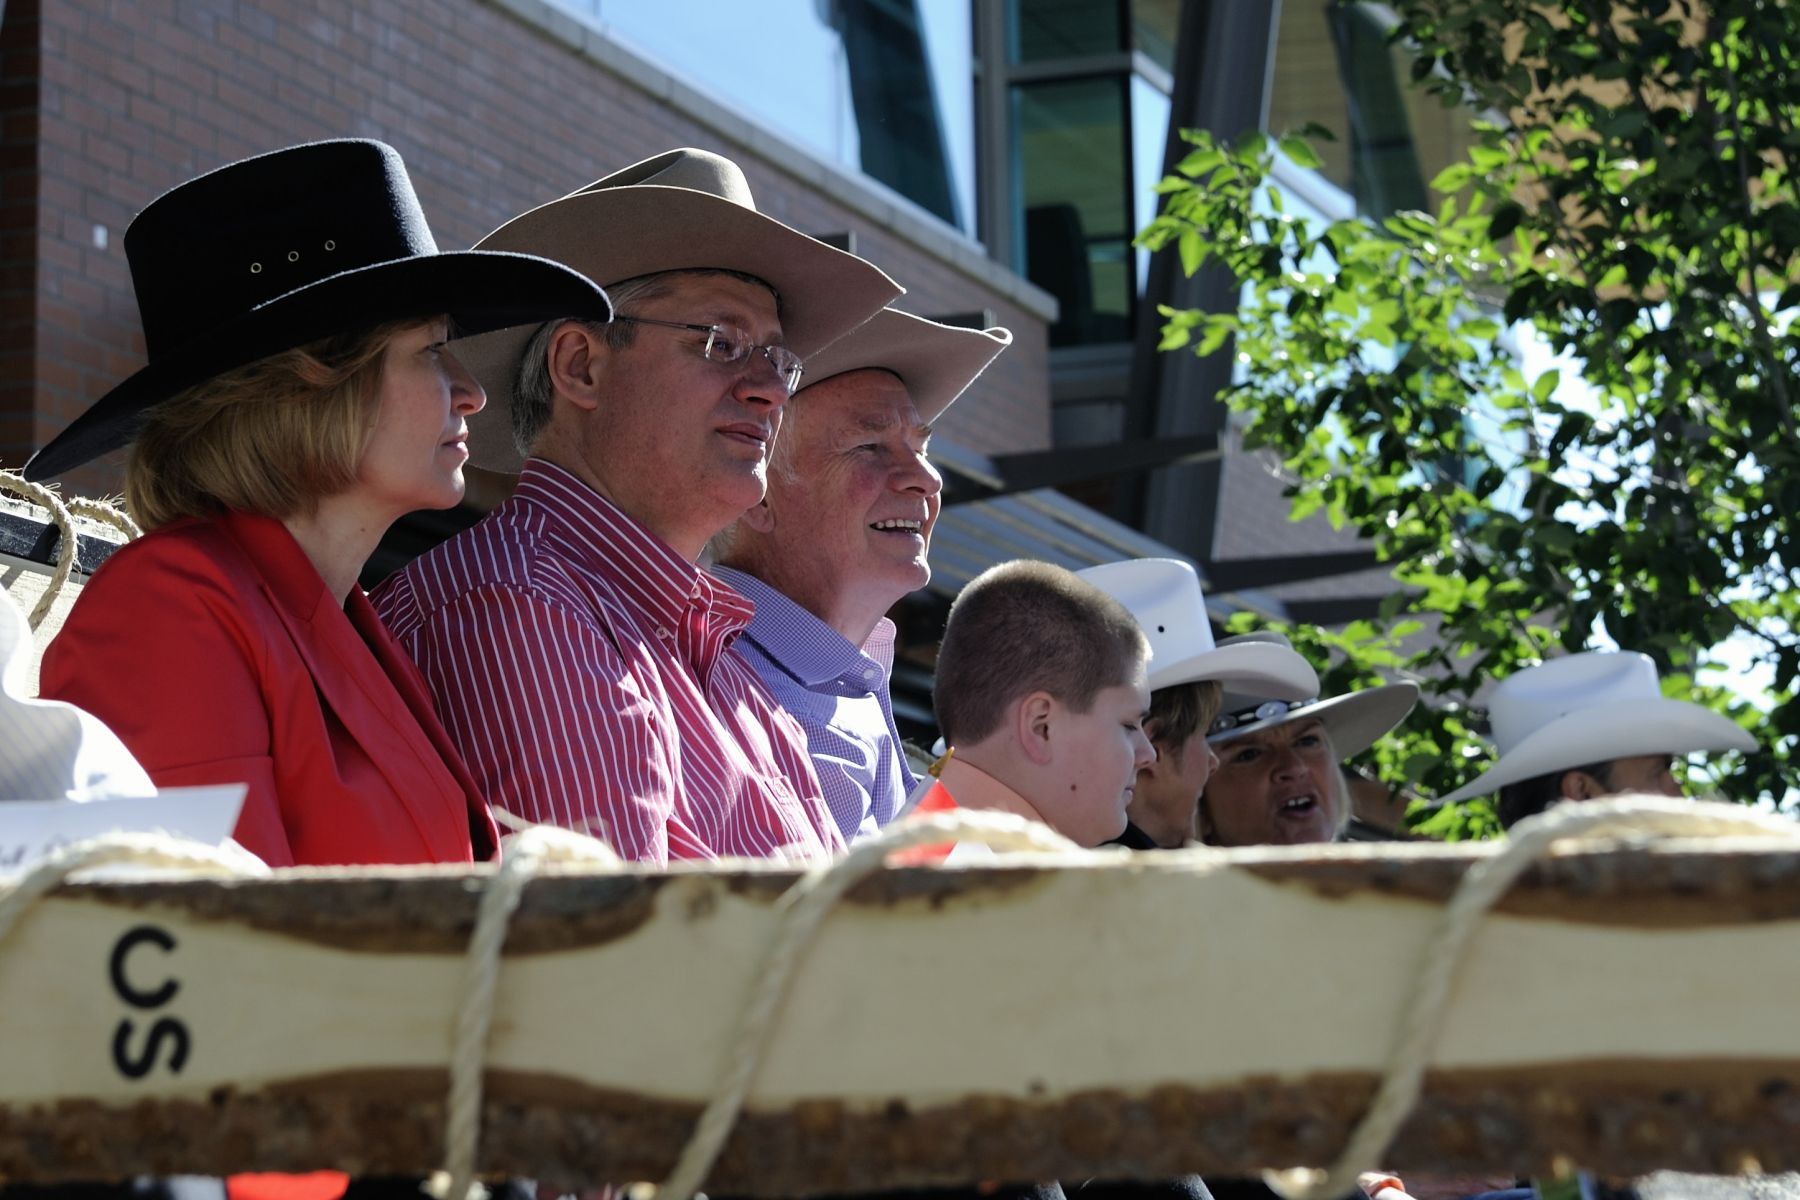 The Right Honourable Stephen Harper, Prime Minister of Canada, and Mrs. Laureen Harper also attended the parade.